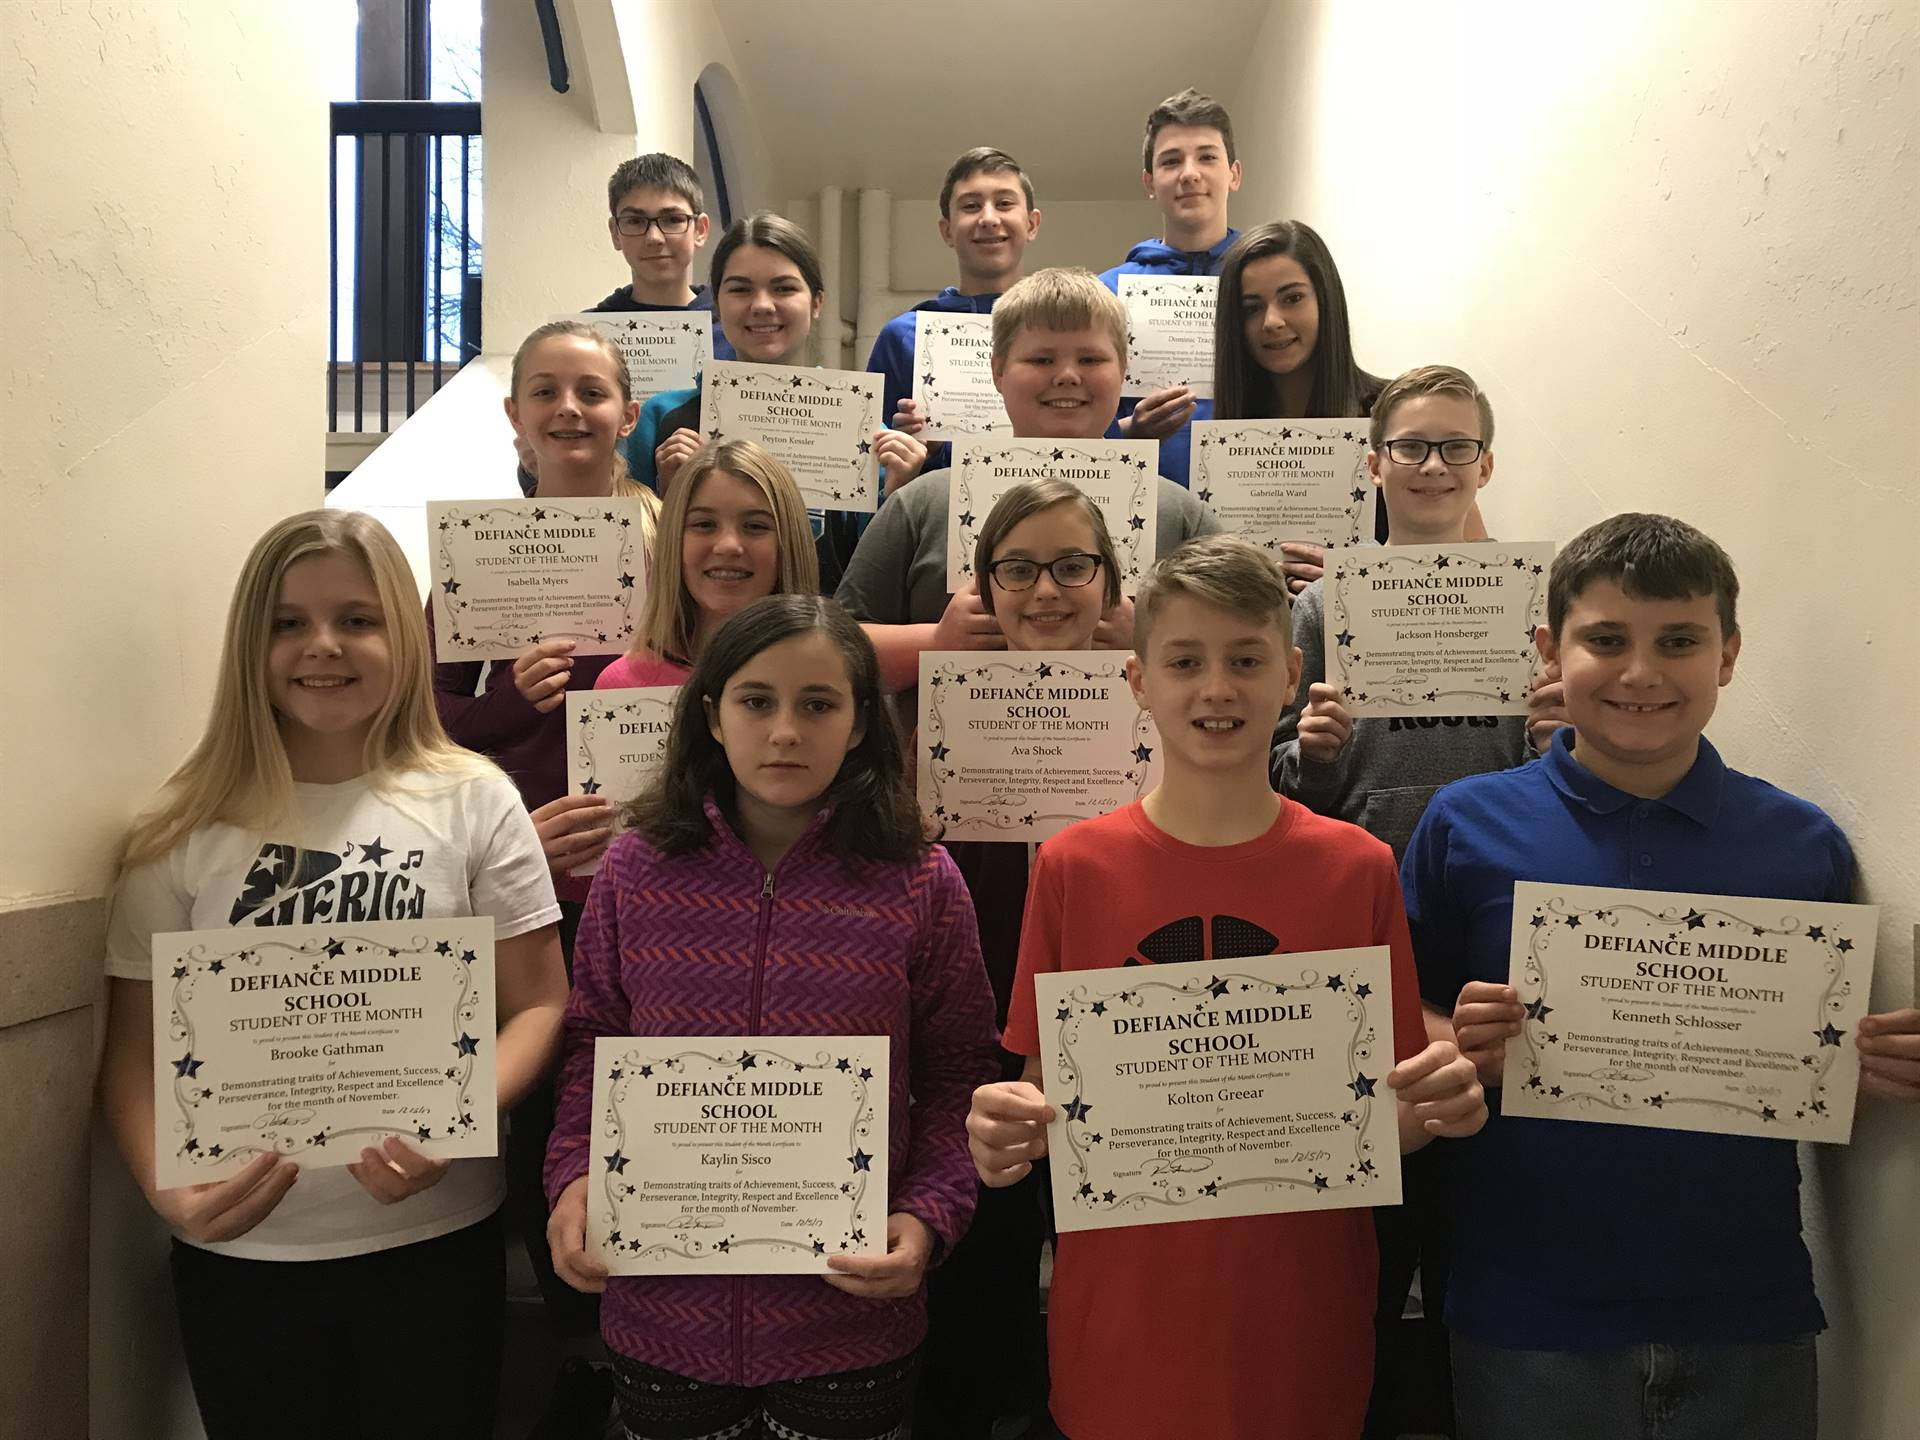 November Student of the Month winners